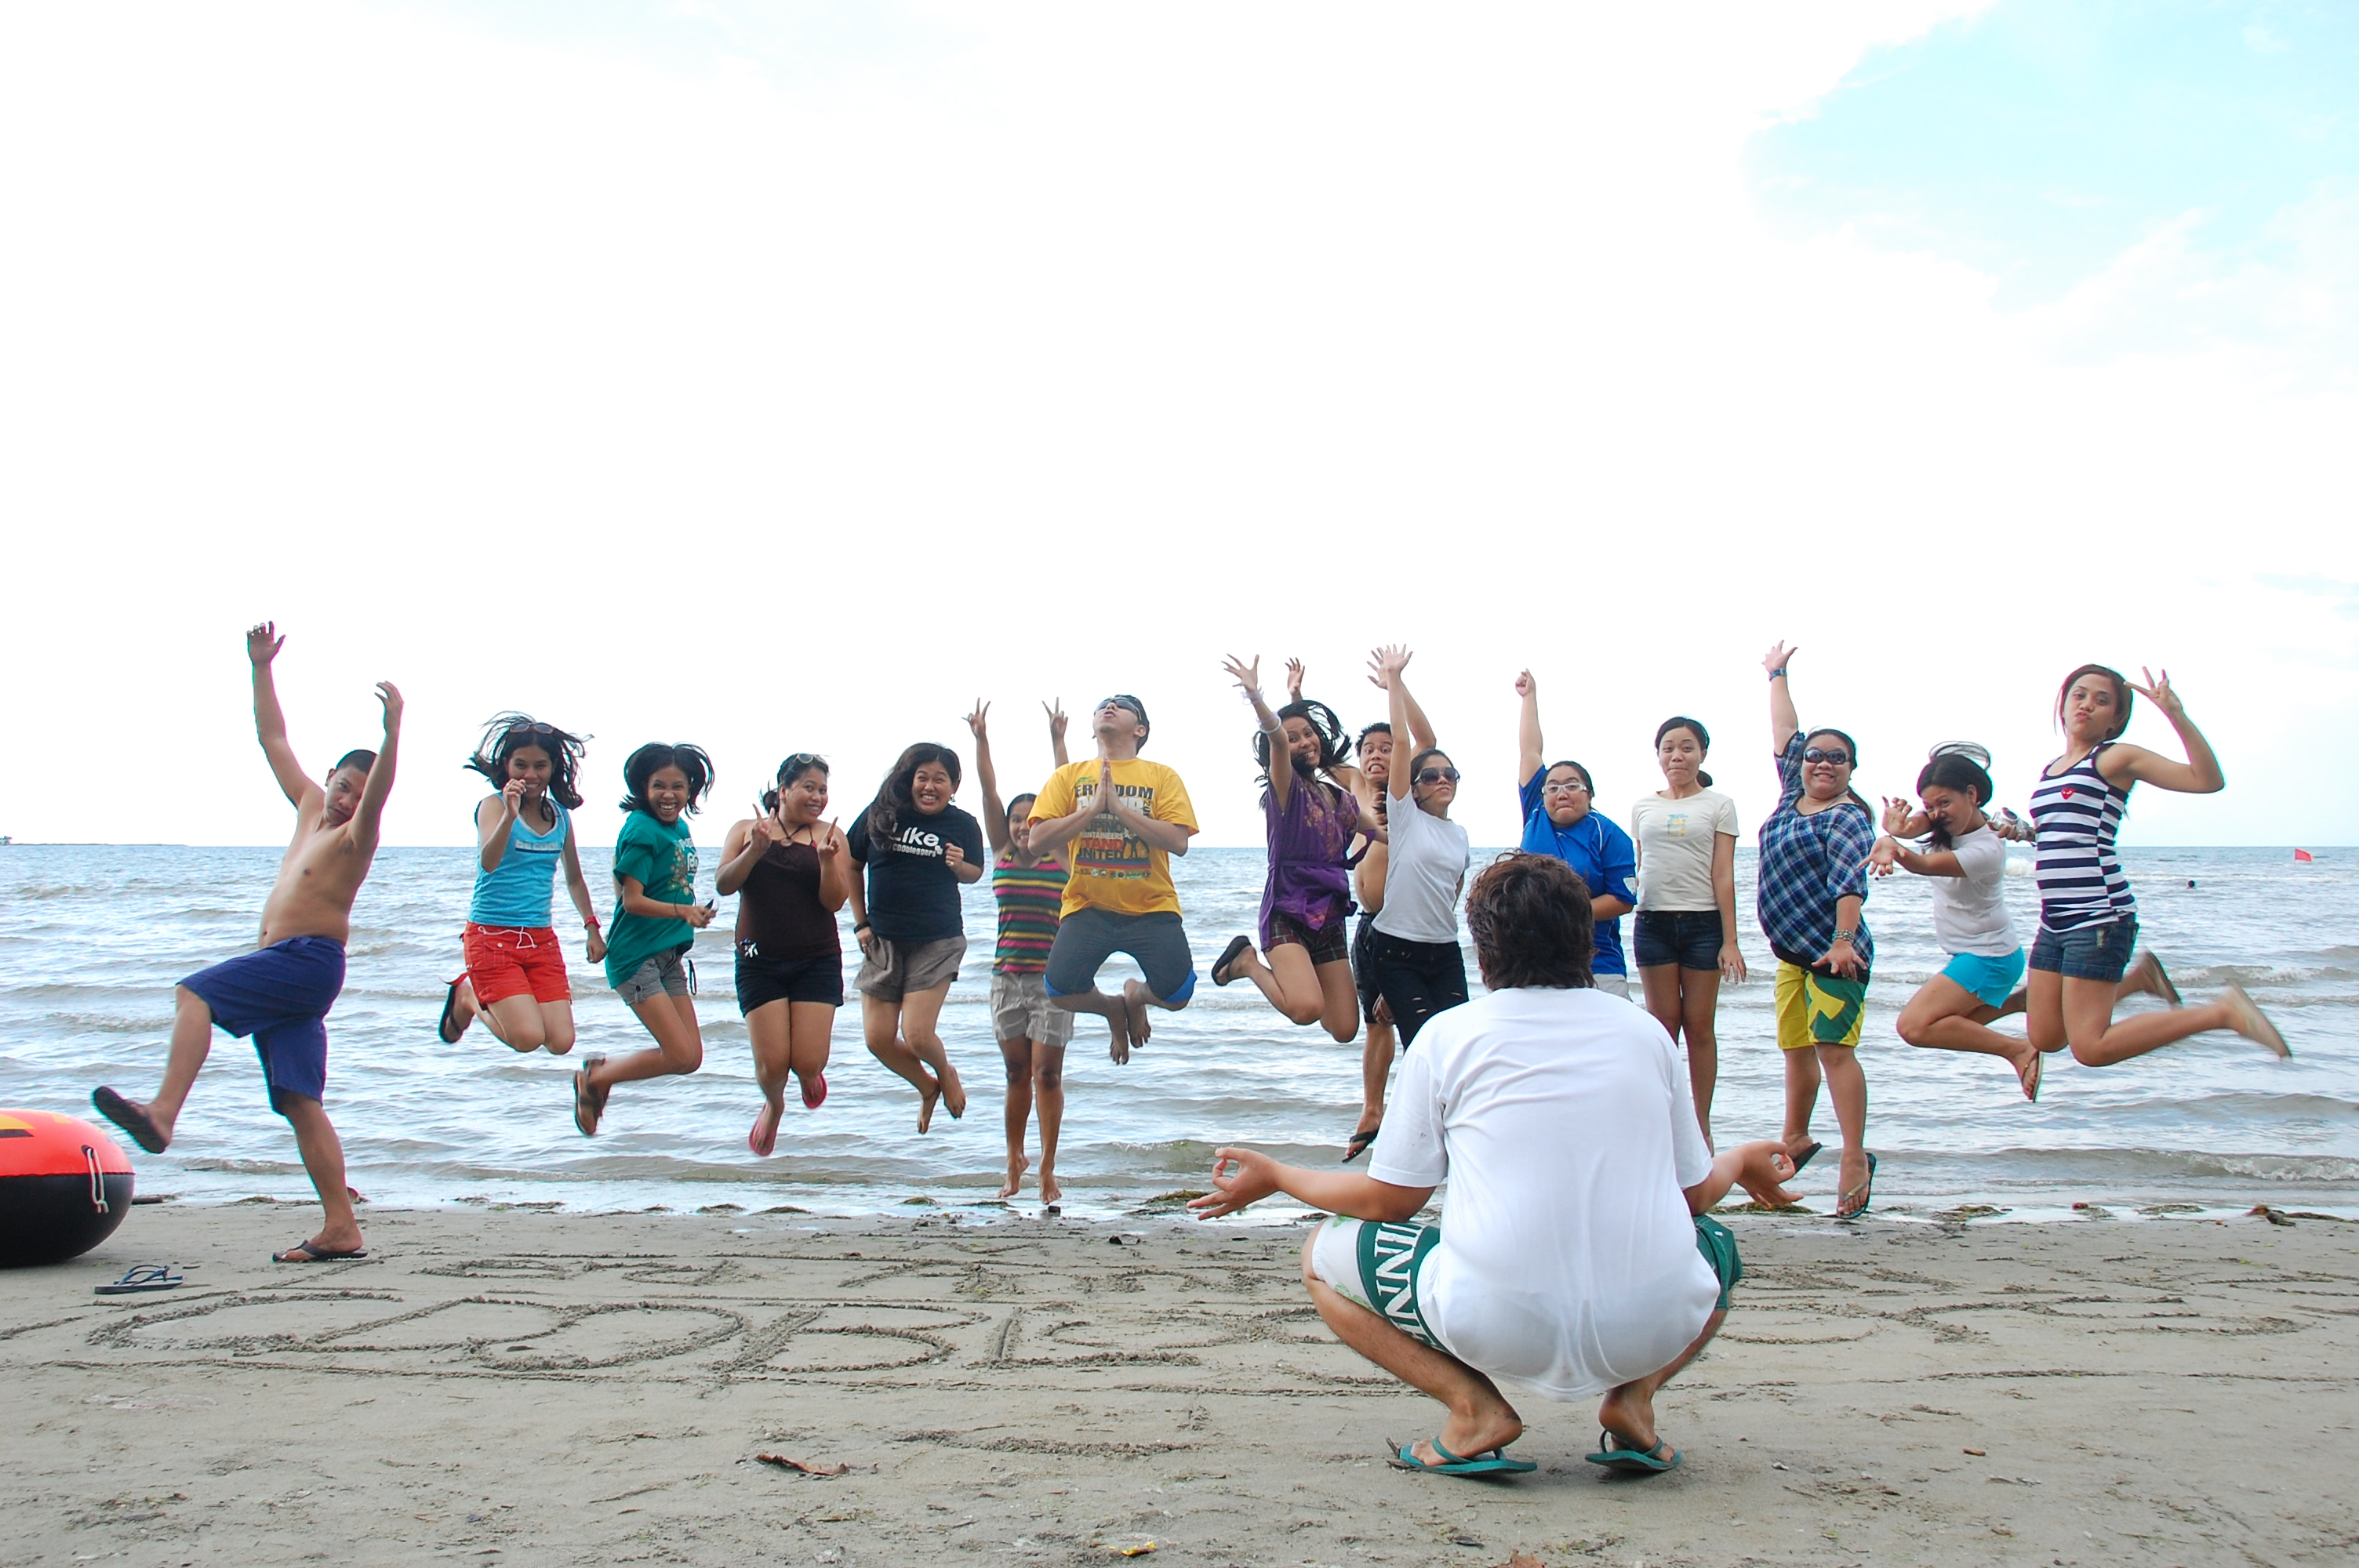 At the beach with the CDO Bloggers – happy 3rd anniversary guys!